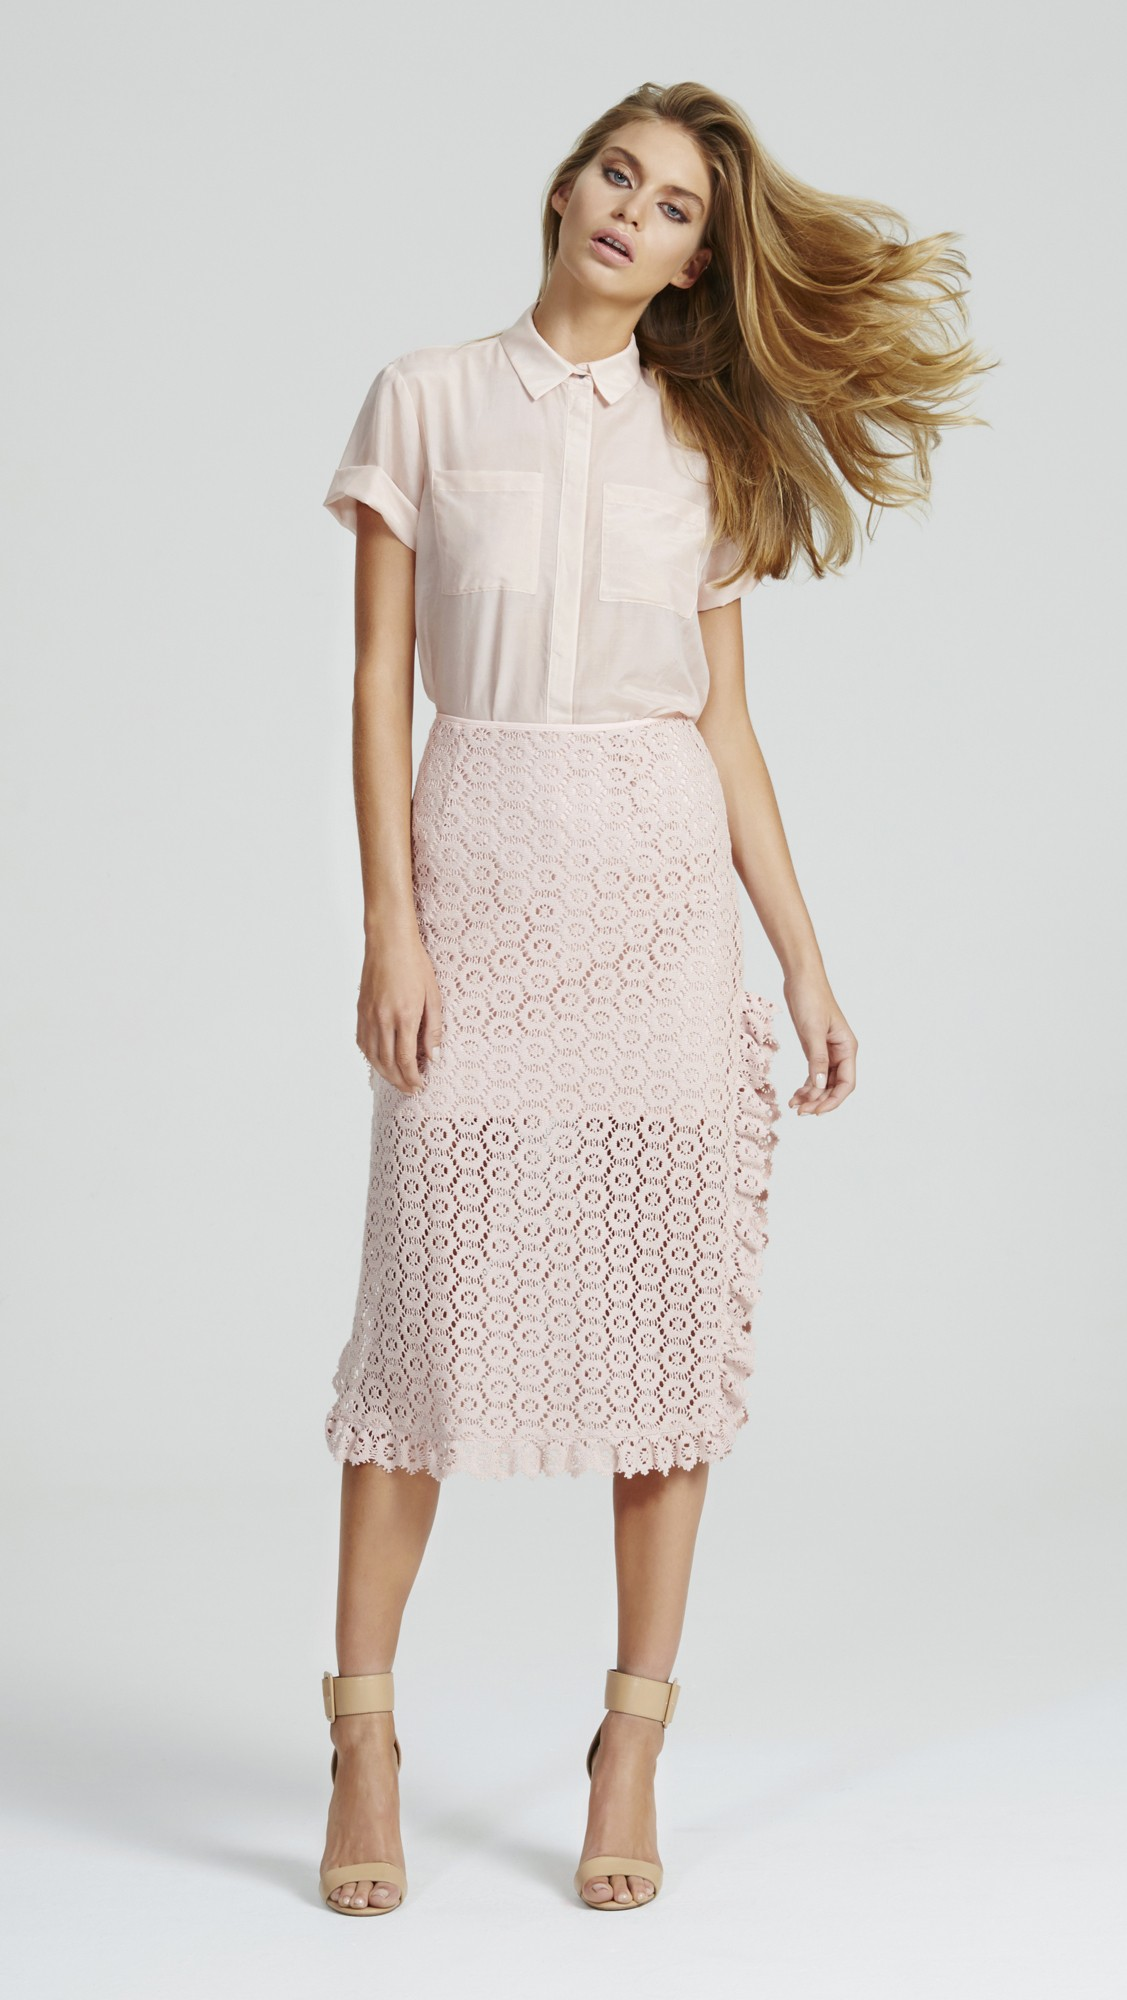 r-pink-light-midi-skirt-r-pink-light-top-blouse-tan-shoe-sandalh-blush-wear-outfit-spring-summer-eyelet-blonde-work.jpg